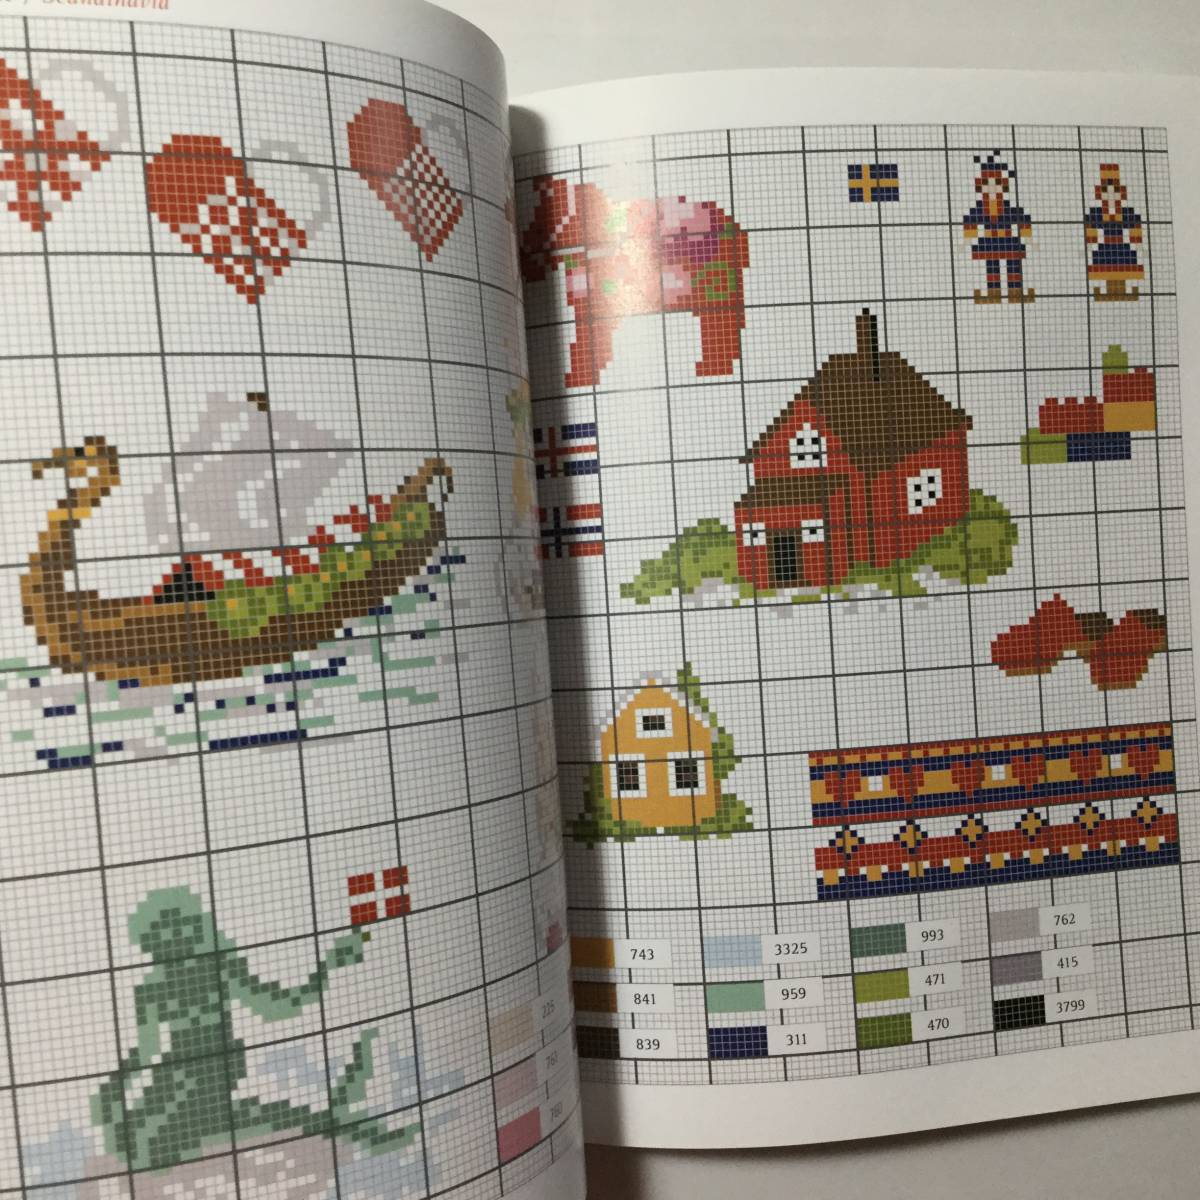 ■ARTBOOK_OUTLET■ 1-059 ★ 手芸本 新品 フランス 刺繍 クロスステッチ CROSS STITCH 図案 SPECIAL EDITION AROUND THE WORLD 希少本_画像6